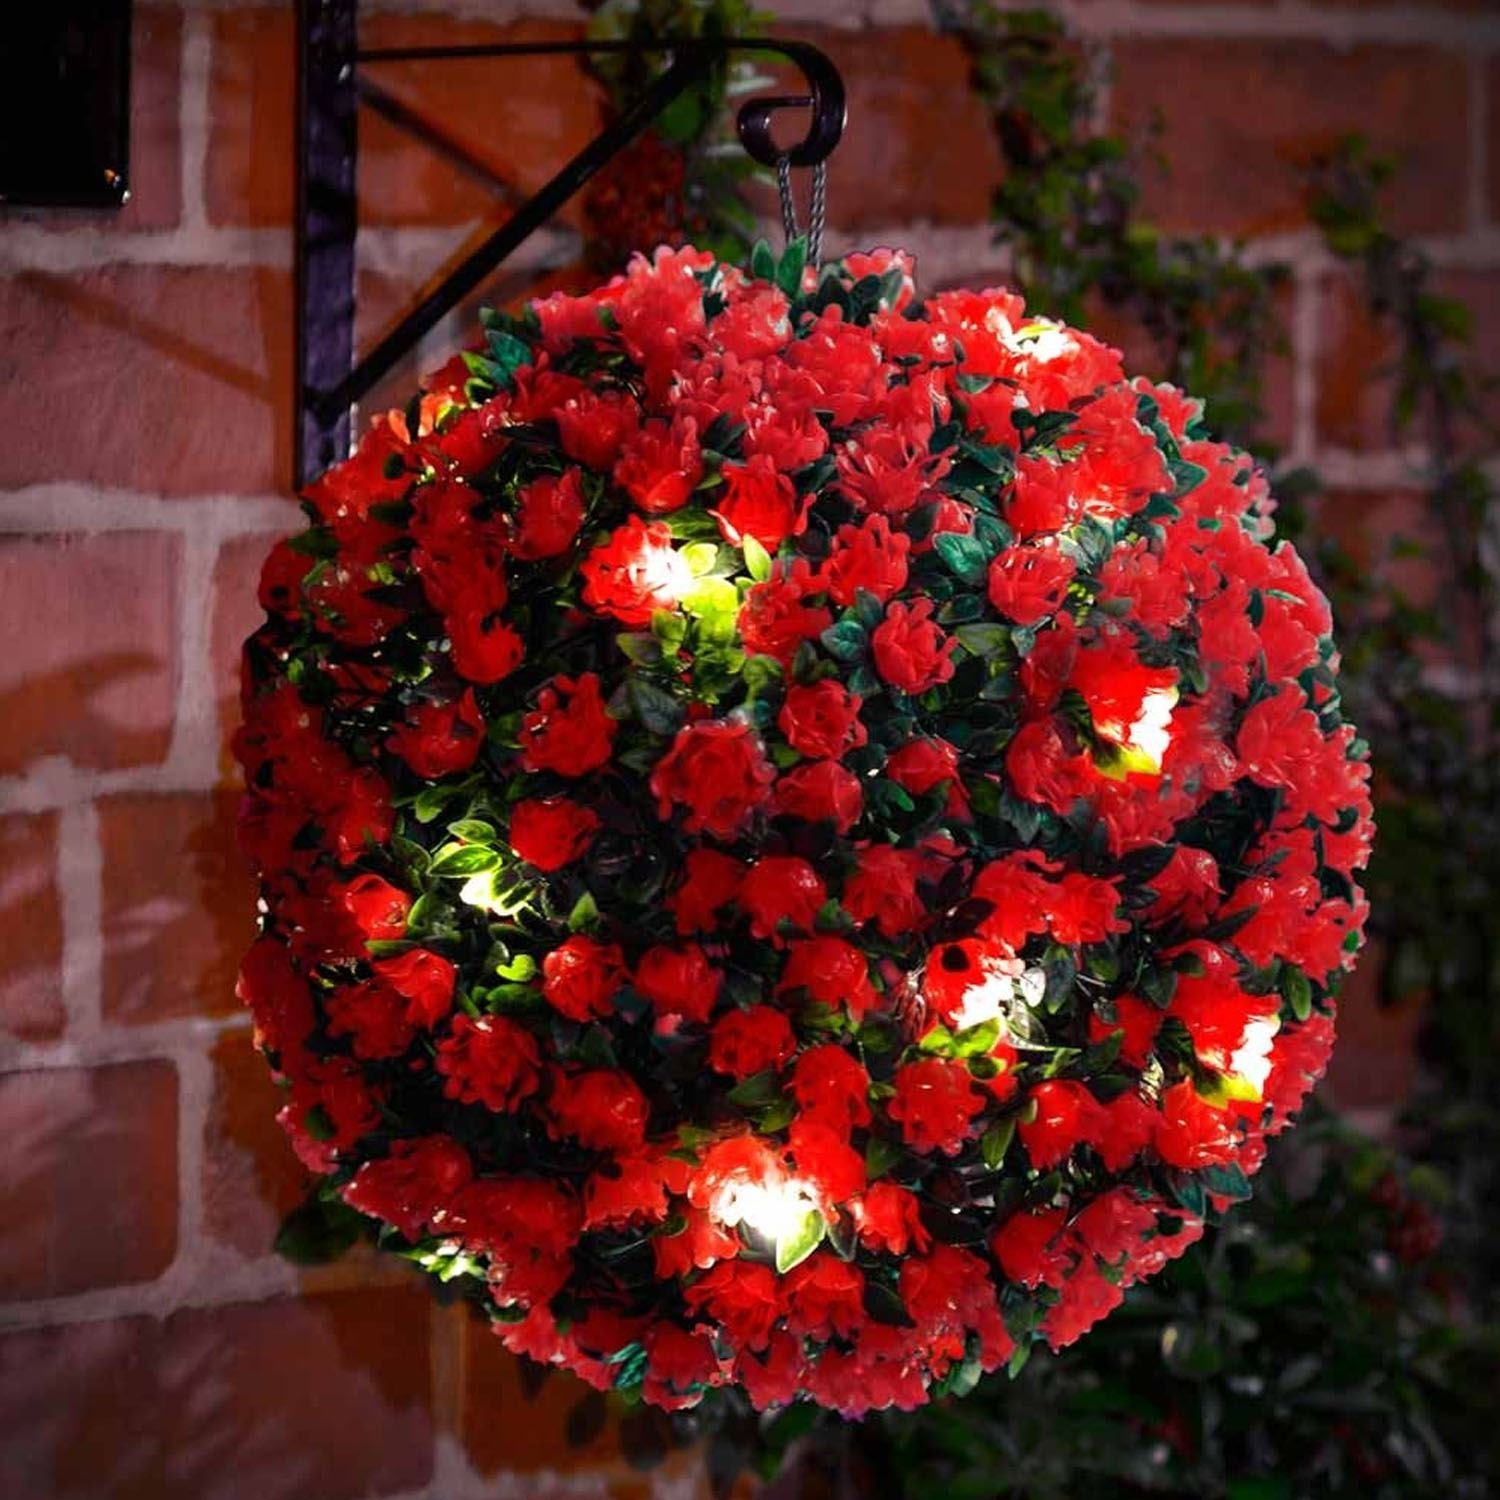 40cm Topiary Balls Part - 35: 28cm Red Rose Solar Powered Topiary Ball With 20 LED Lights - Dual Function